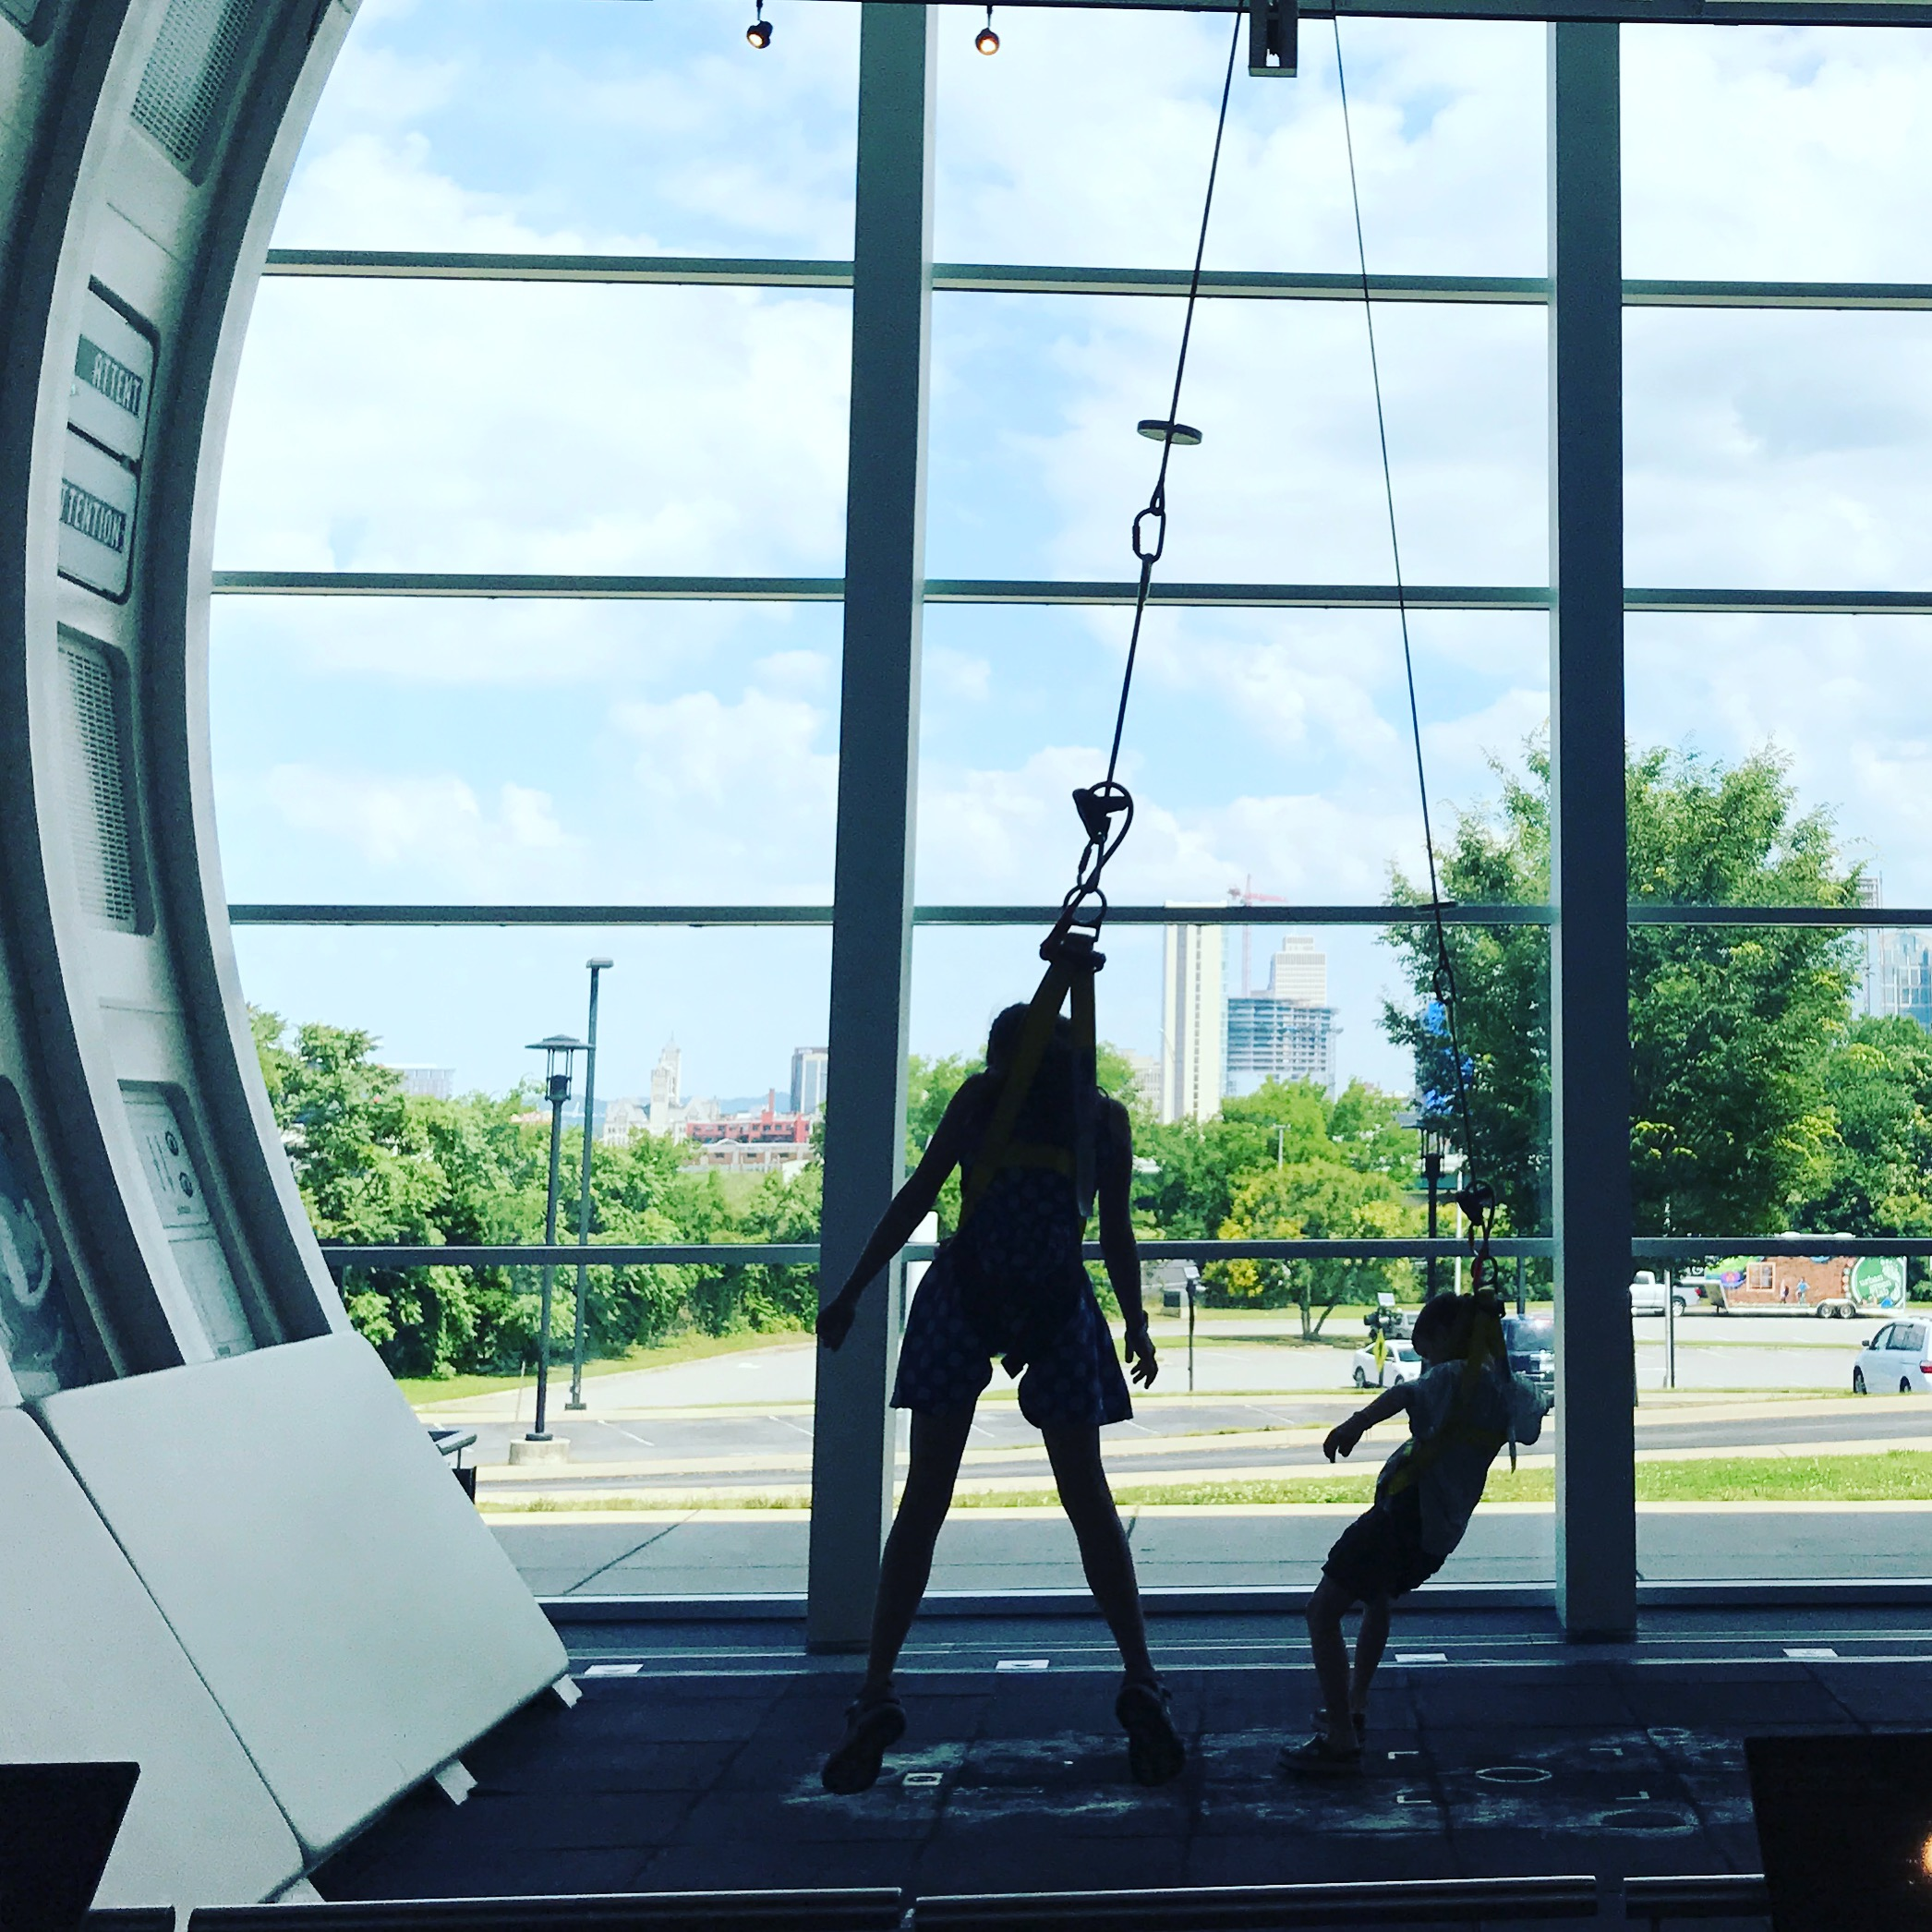 Great Kid Friendly Places to Visit in Nashville, Being weightless in the Adventure Science Center